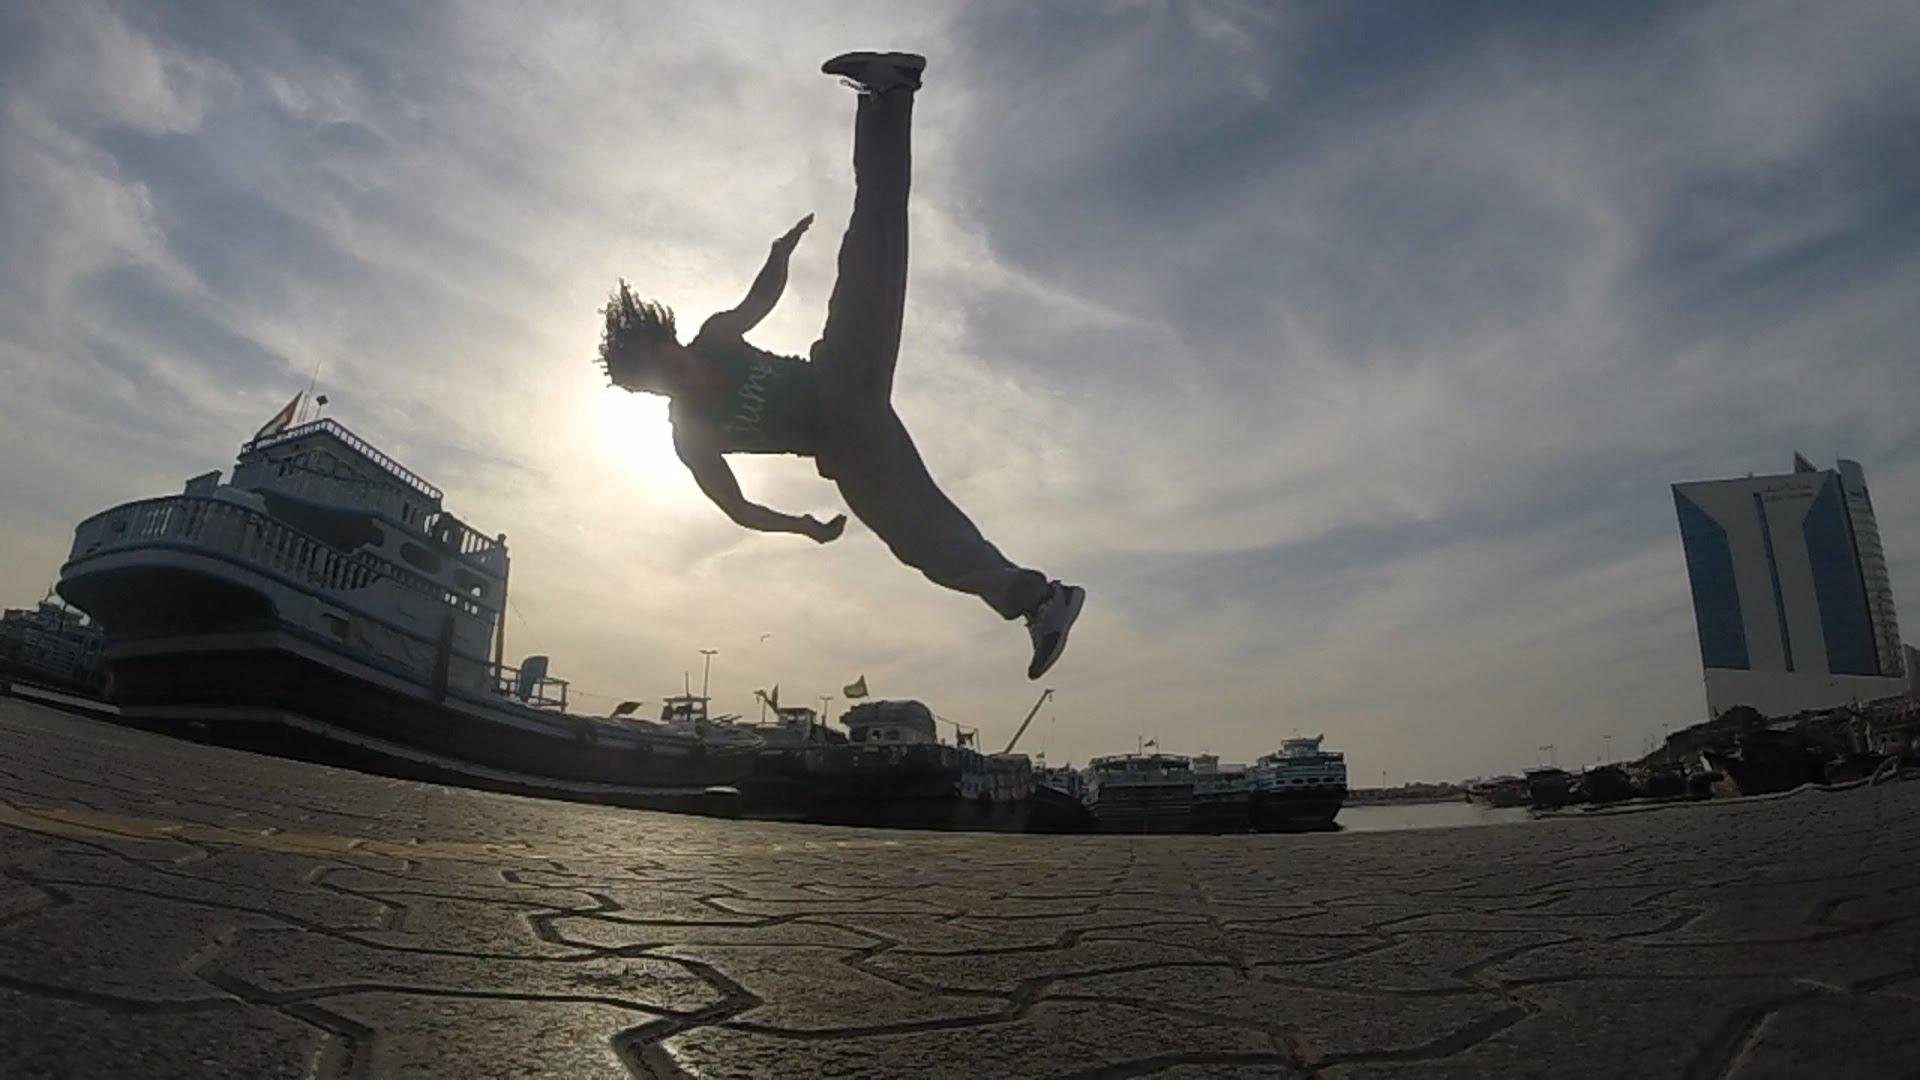 Bboy Wallpaper Full Hd Download Parkour Free Running Wallpapers Gallery